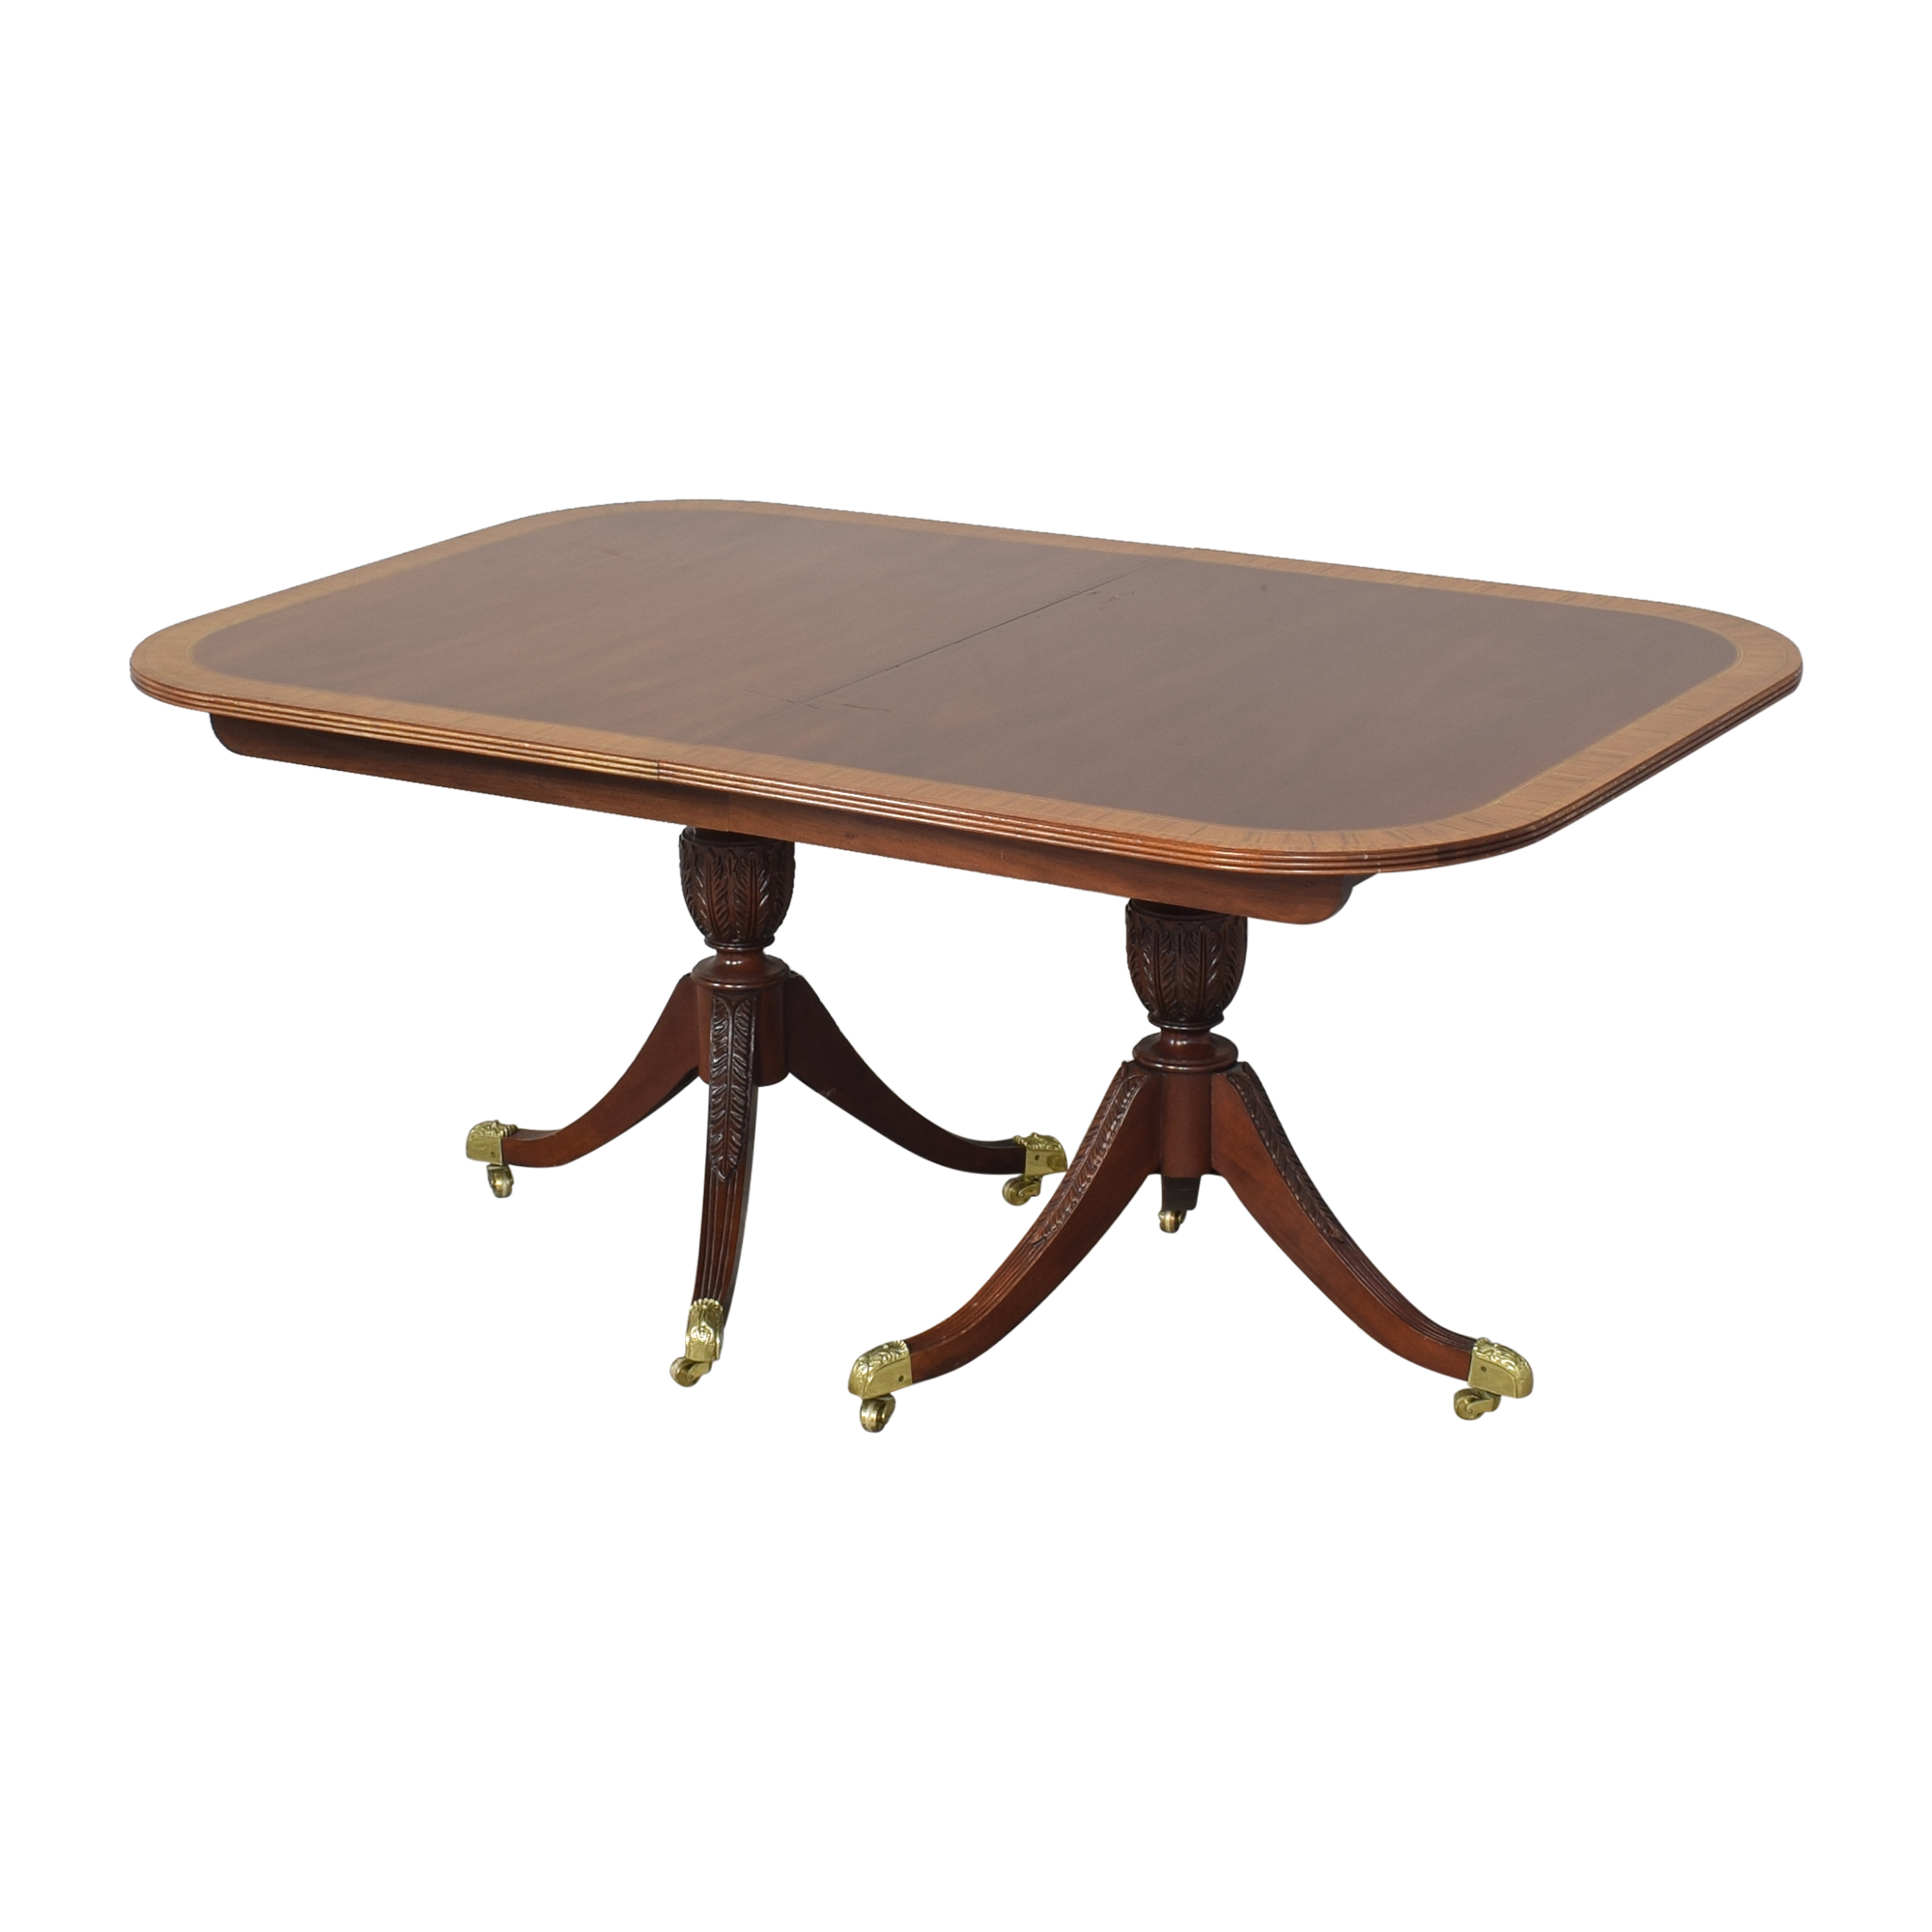 Councill Councill Craftsman Georgian Banded Extendable Dining Table brown